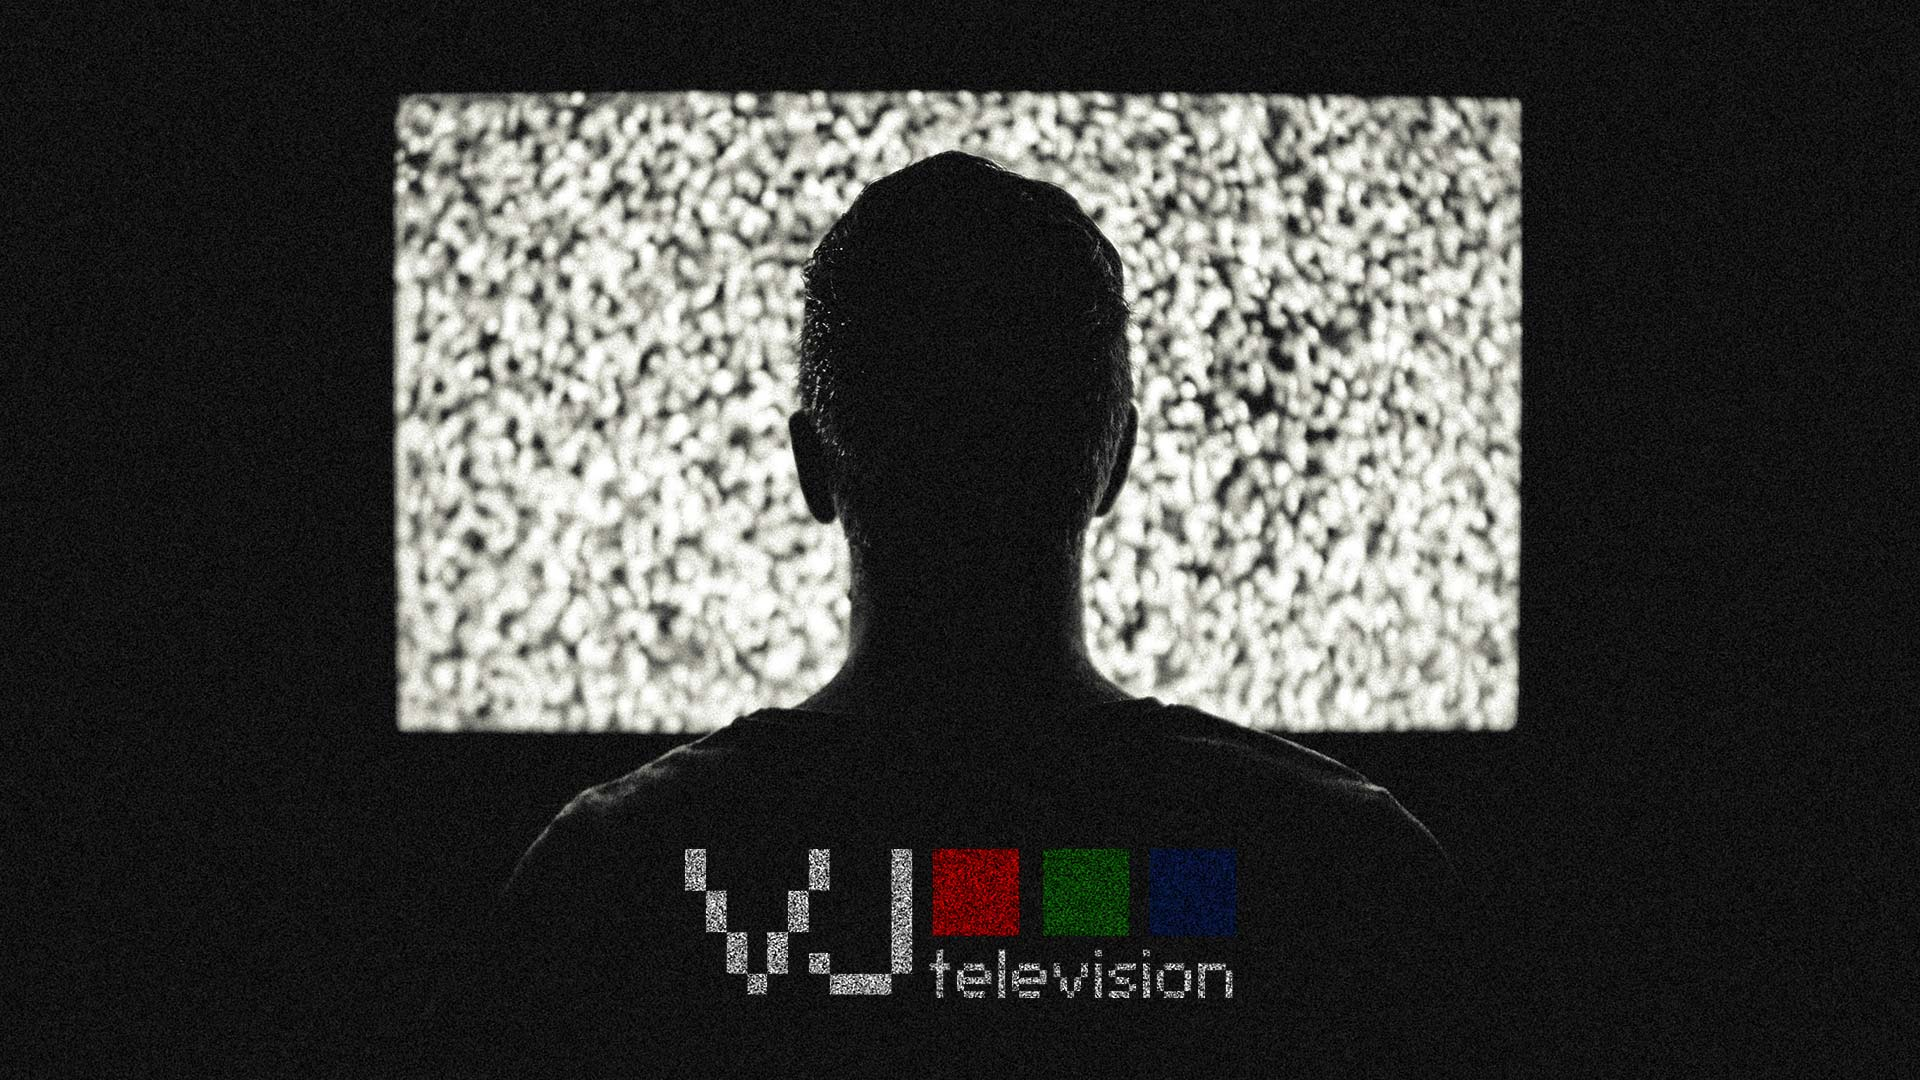 Image for: VJ Television